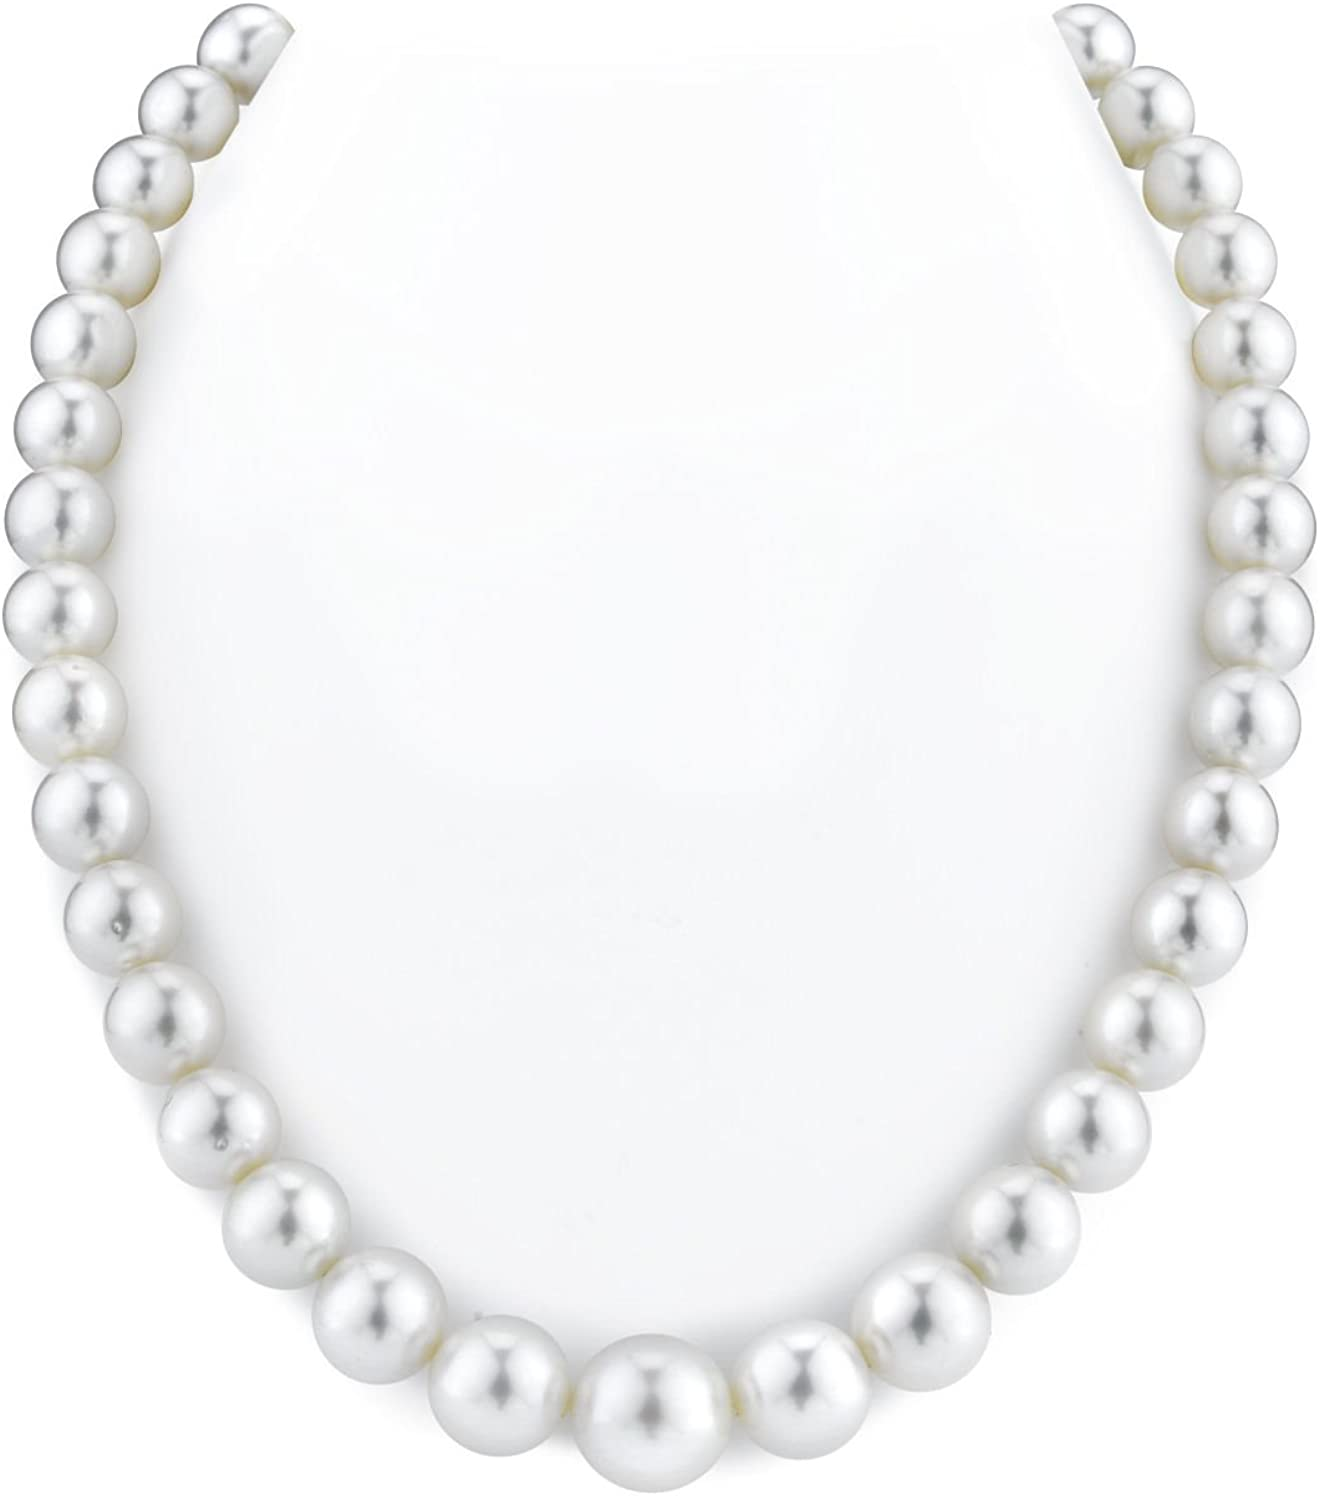 THE PEARL SOURCE 14K Gold 9-12mm Round Genuine White South Sea Cultured Pearl Necklace in 18